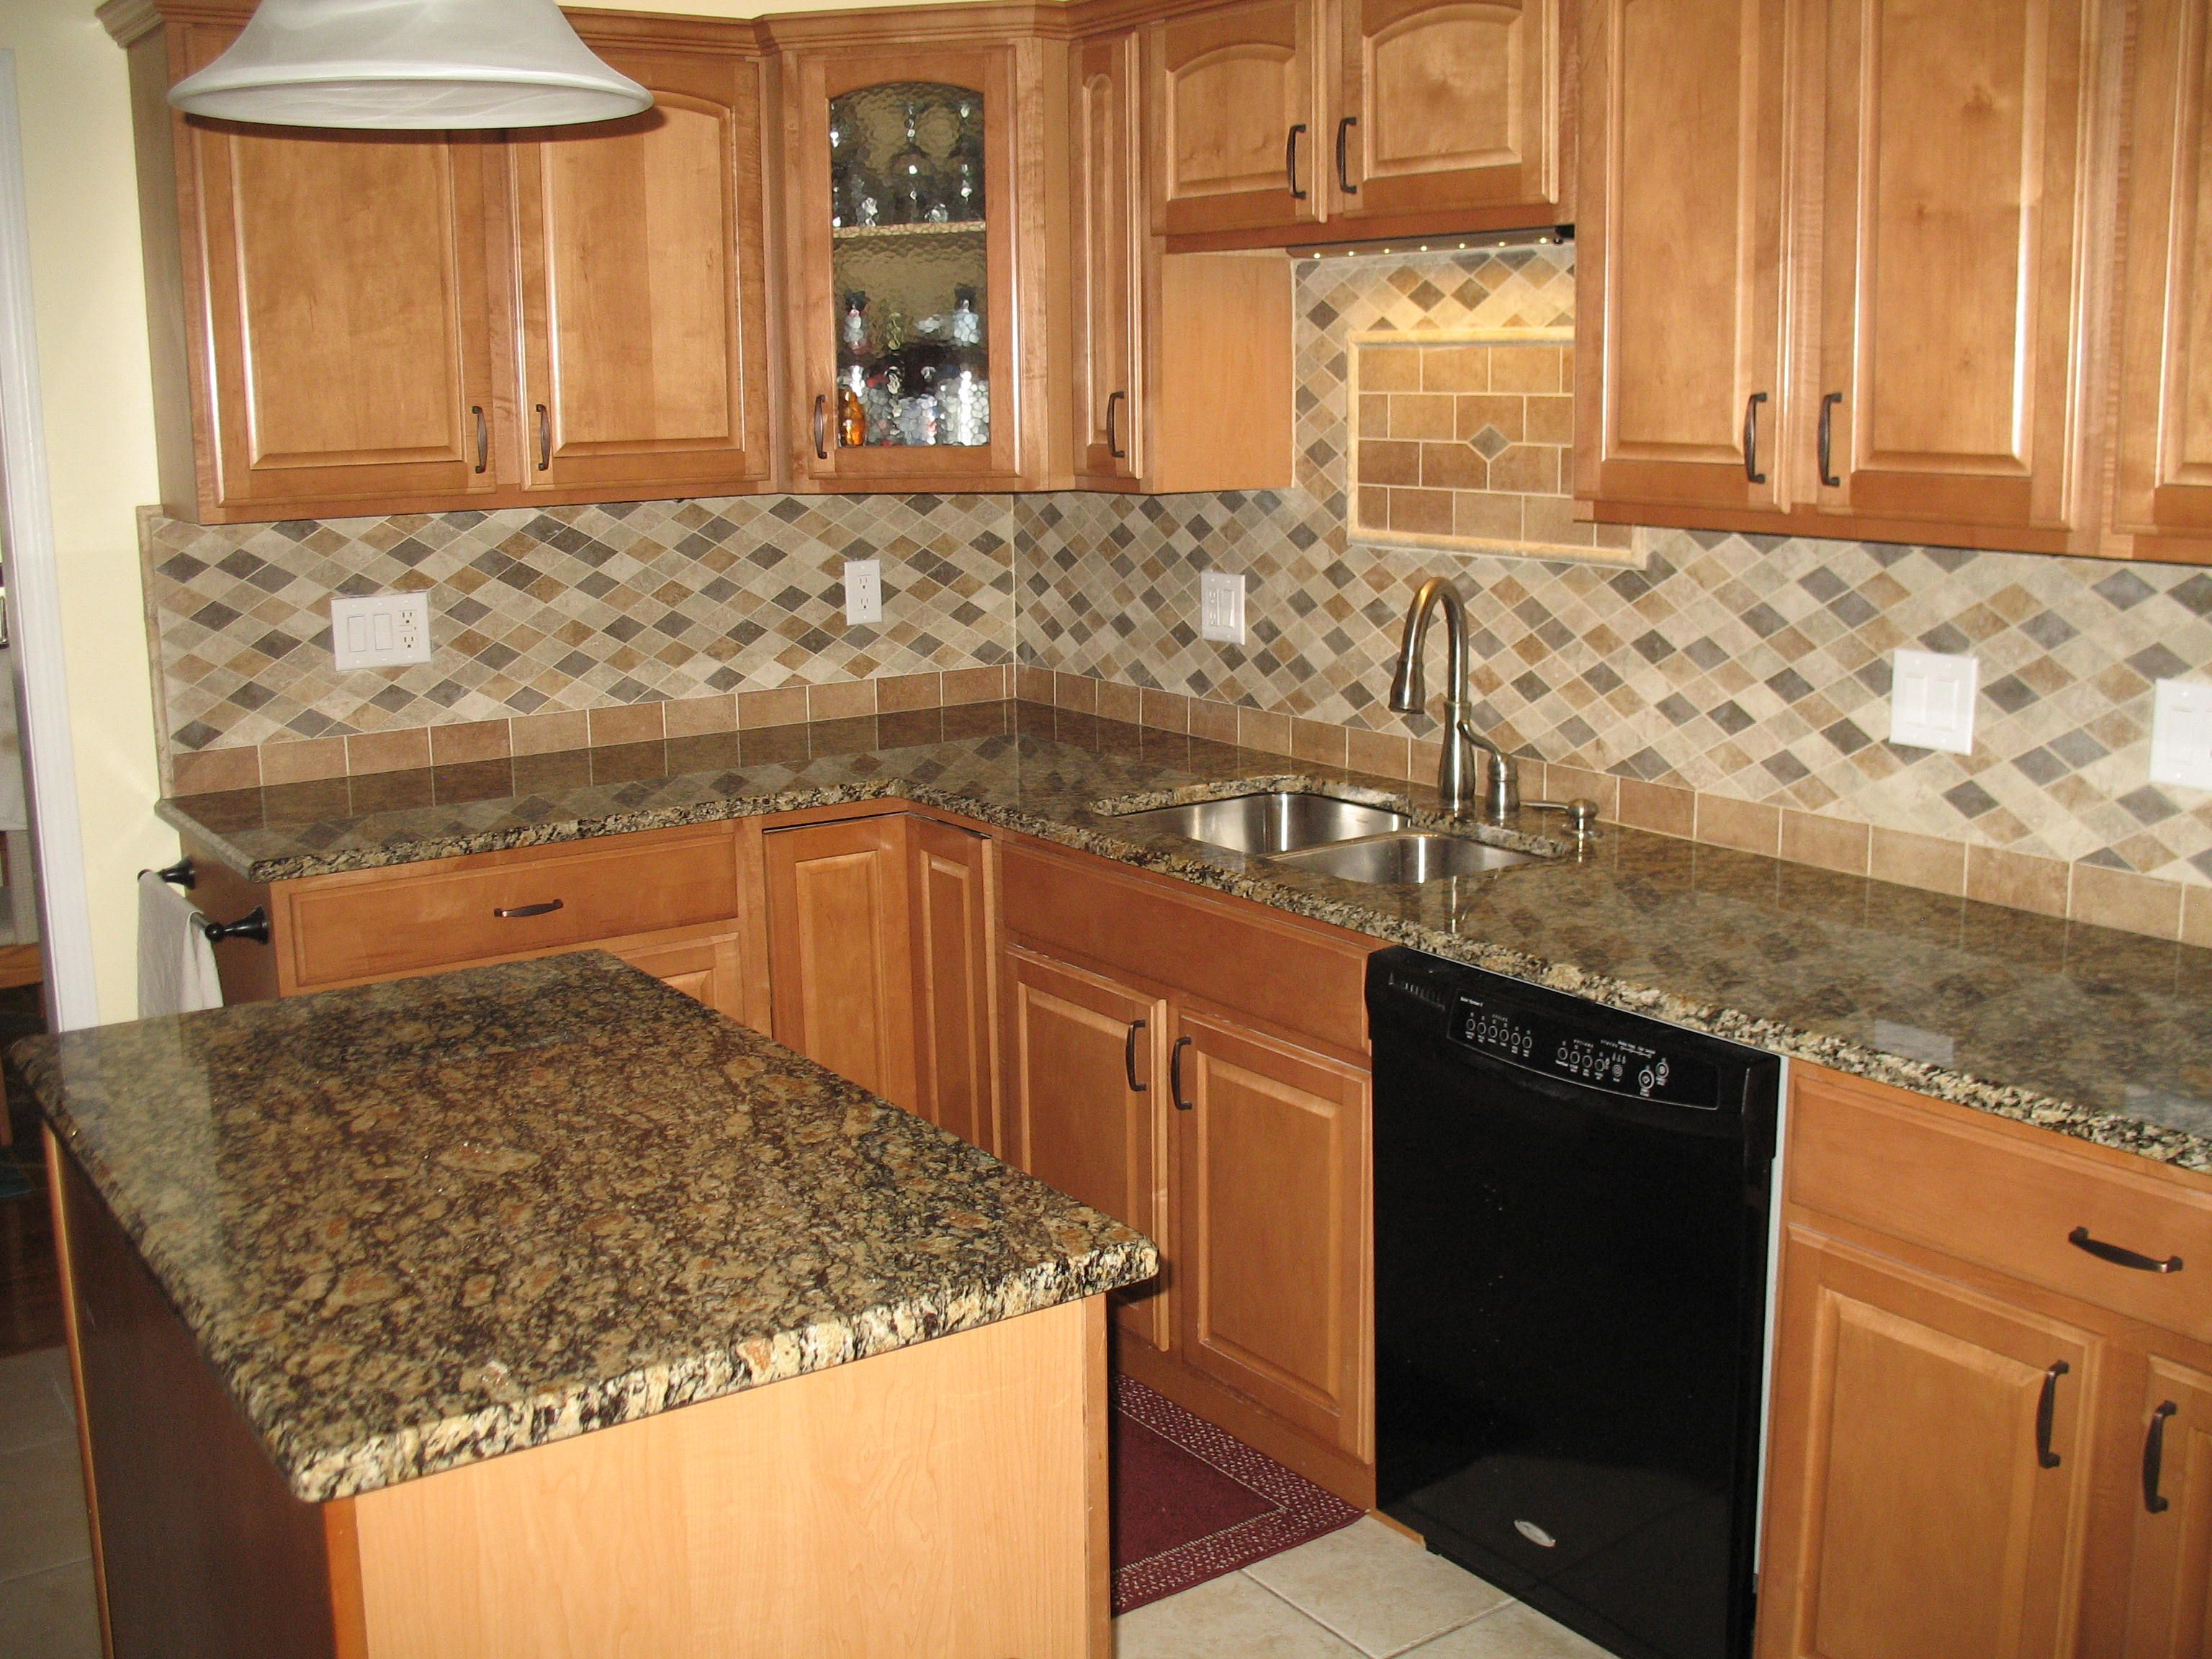 Granite Stone Is Fabulous With Awesome Finish And Wonderful Textures That Provide Sophisticated Birch Kitchen Cabinets Kitchen Cabinets Kitchen Cabinet Design